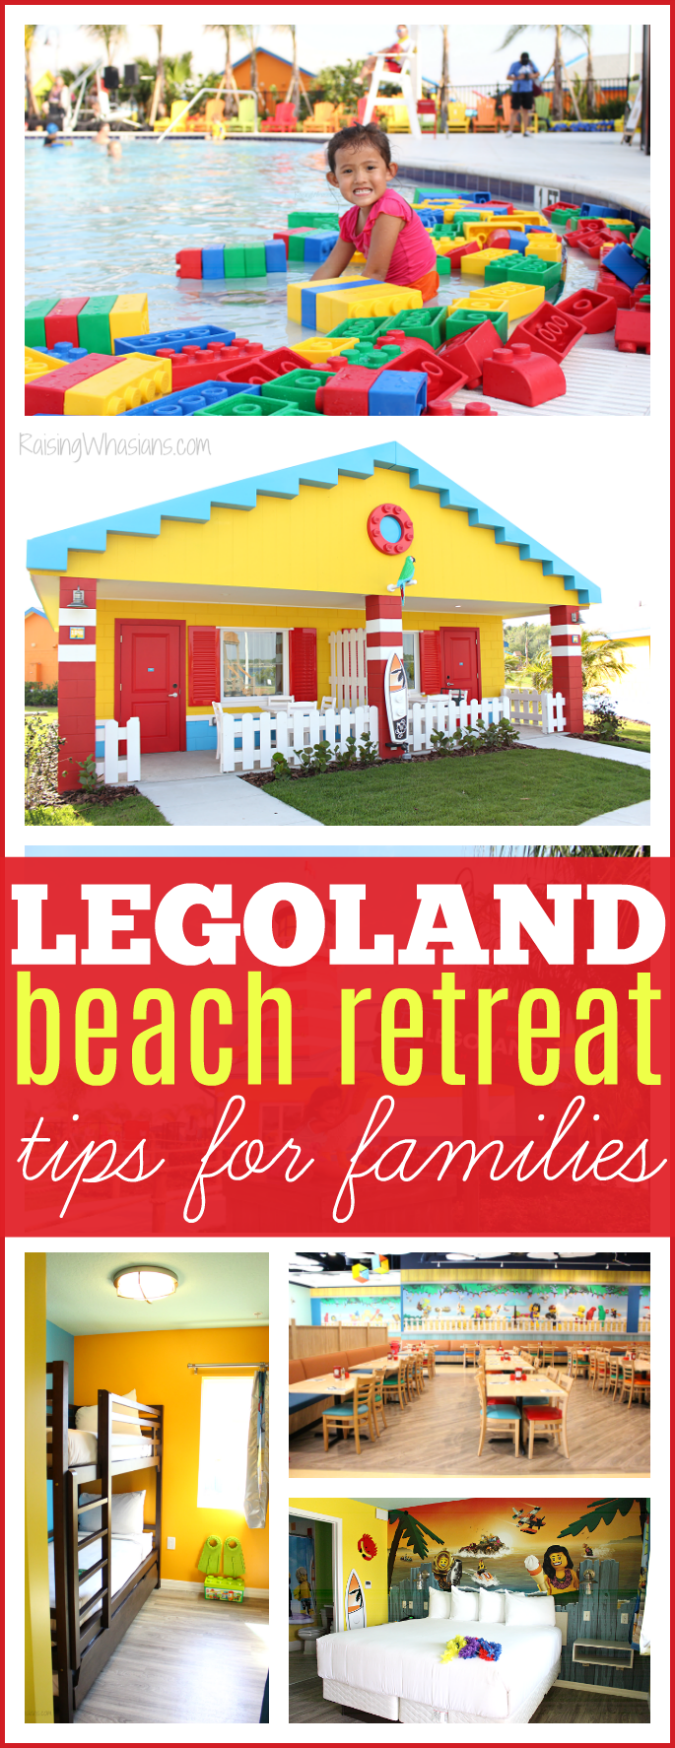 Legoland beach retreat tips pinterest